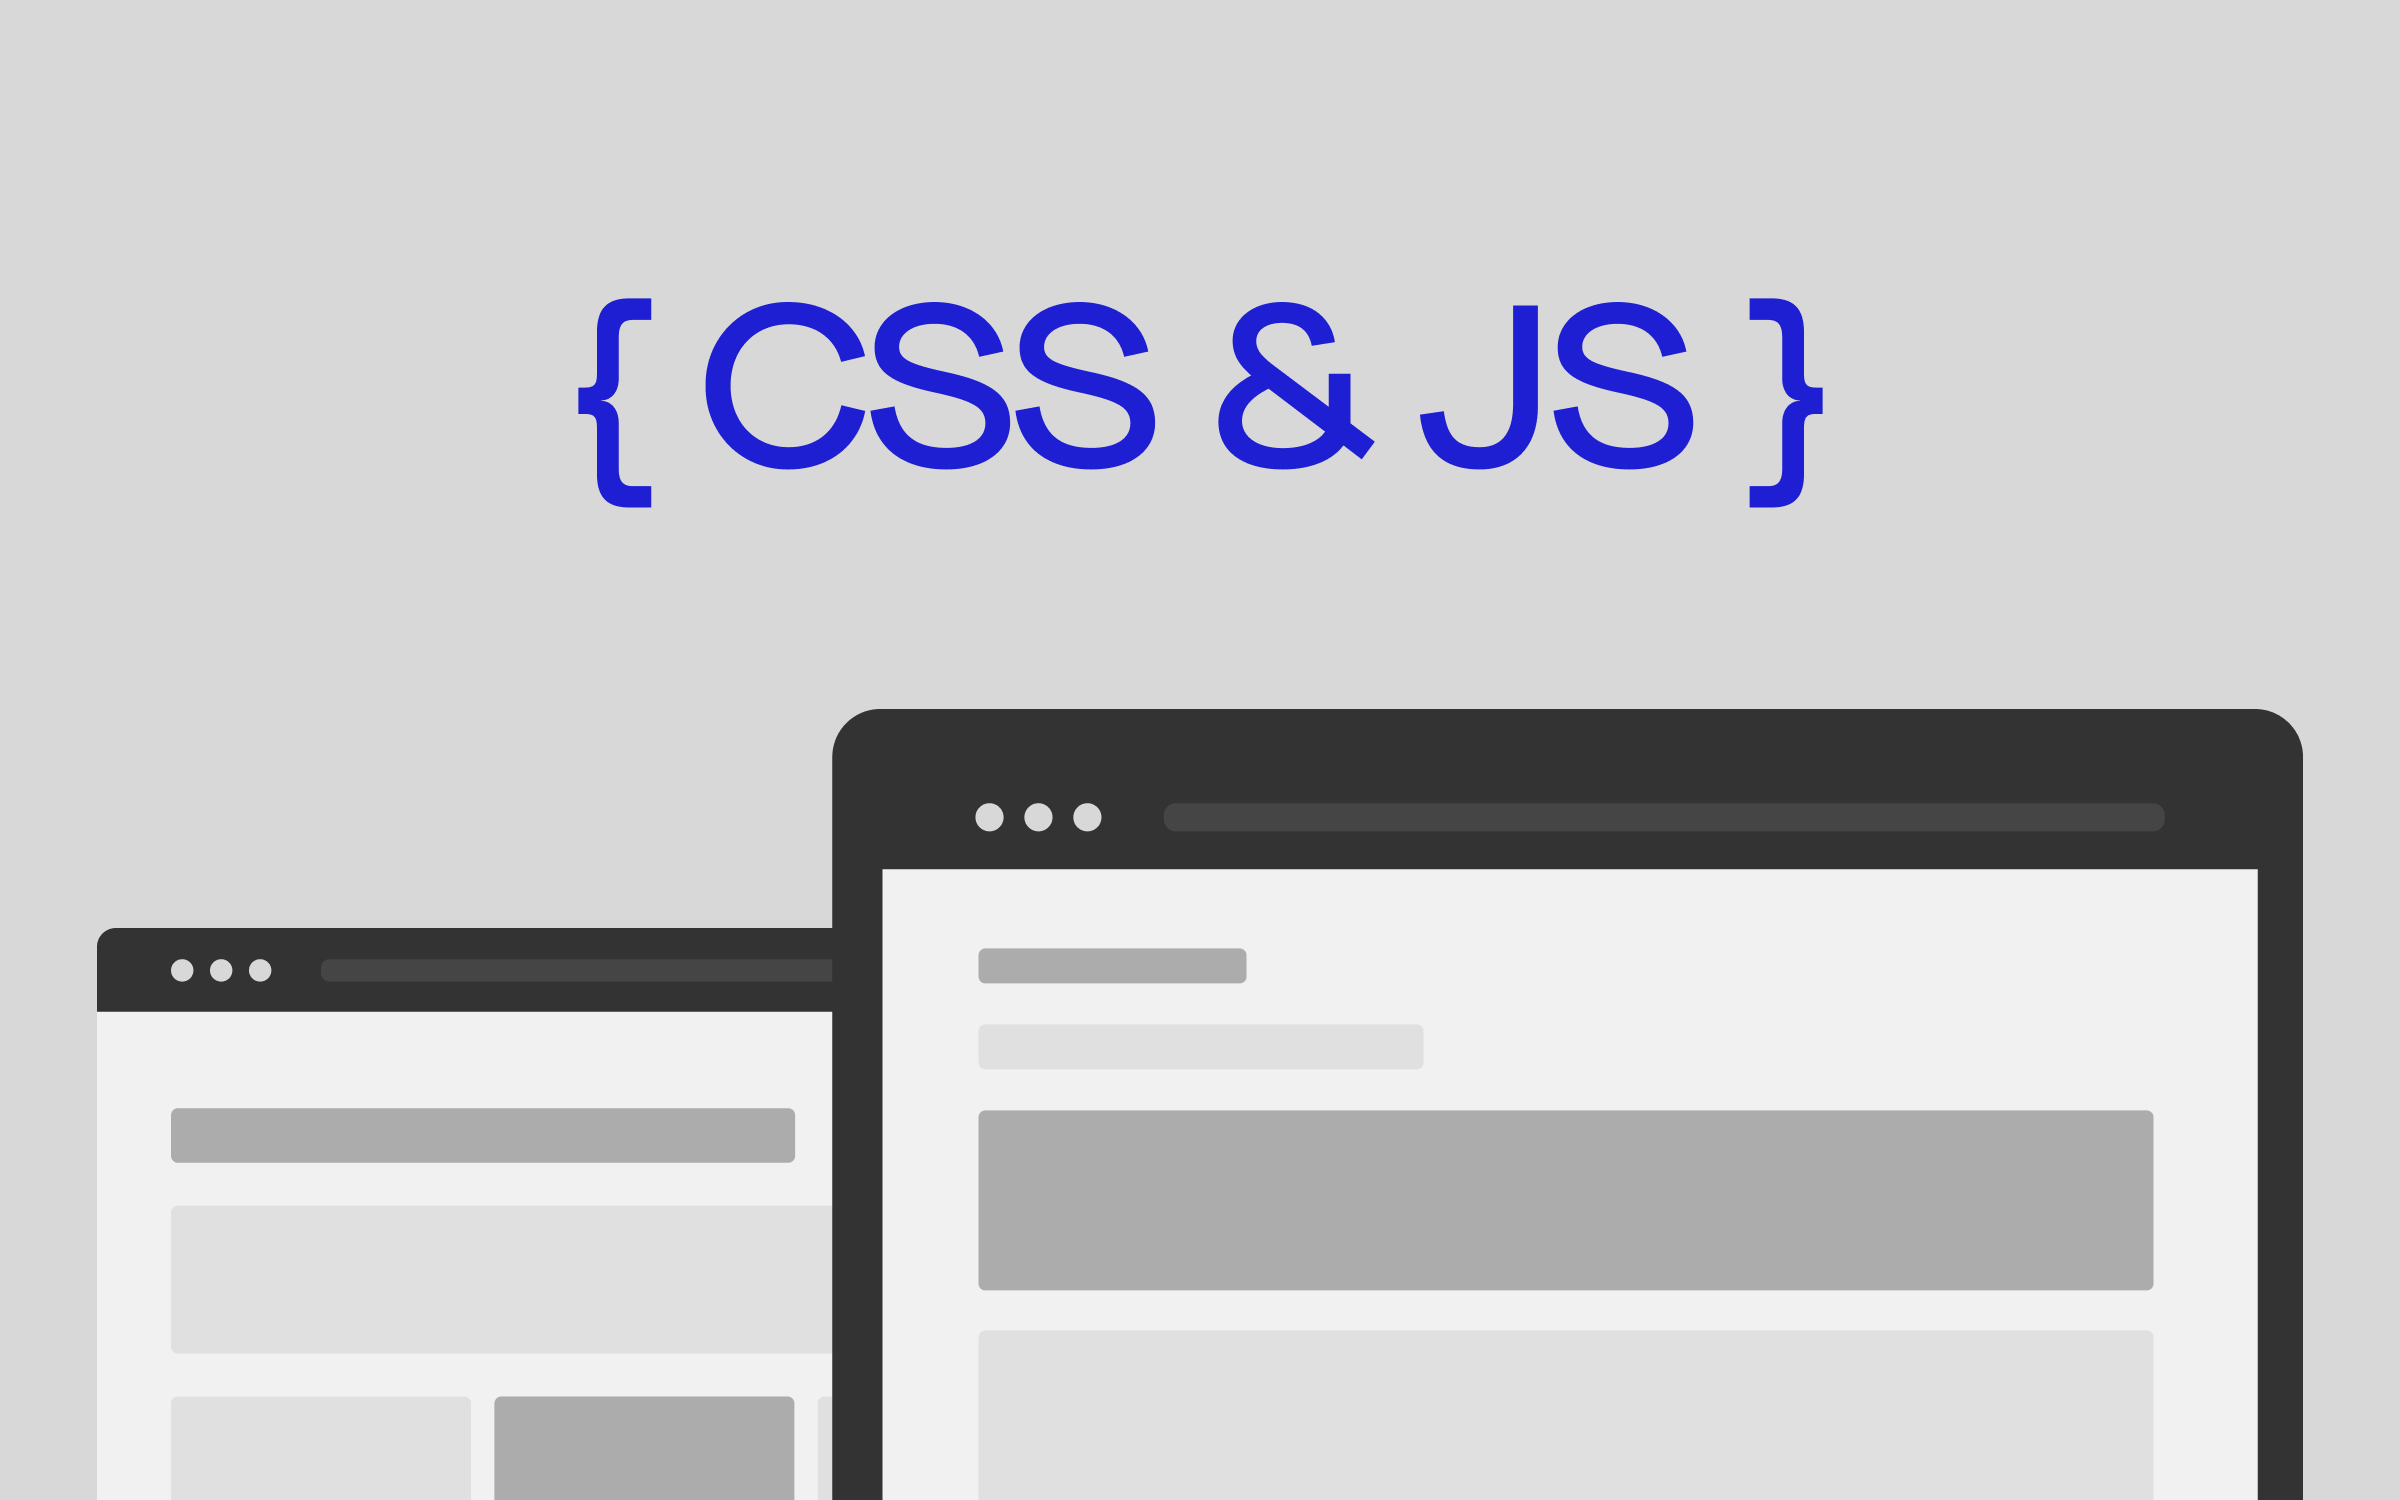 Improving website performance by eliminating render-blocking CSS and JavaScript